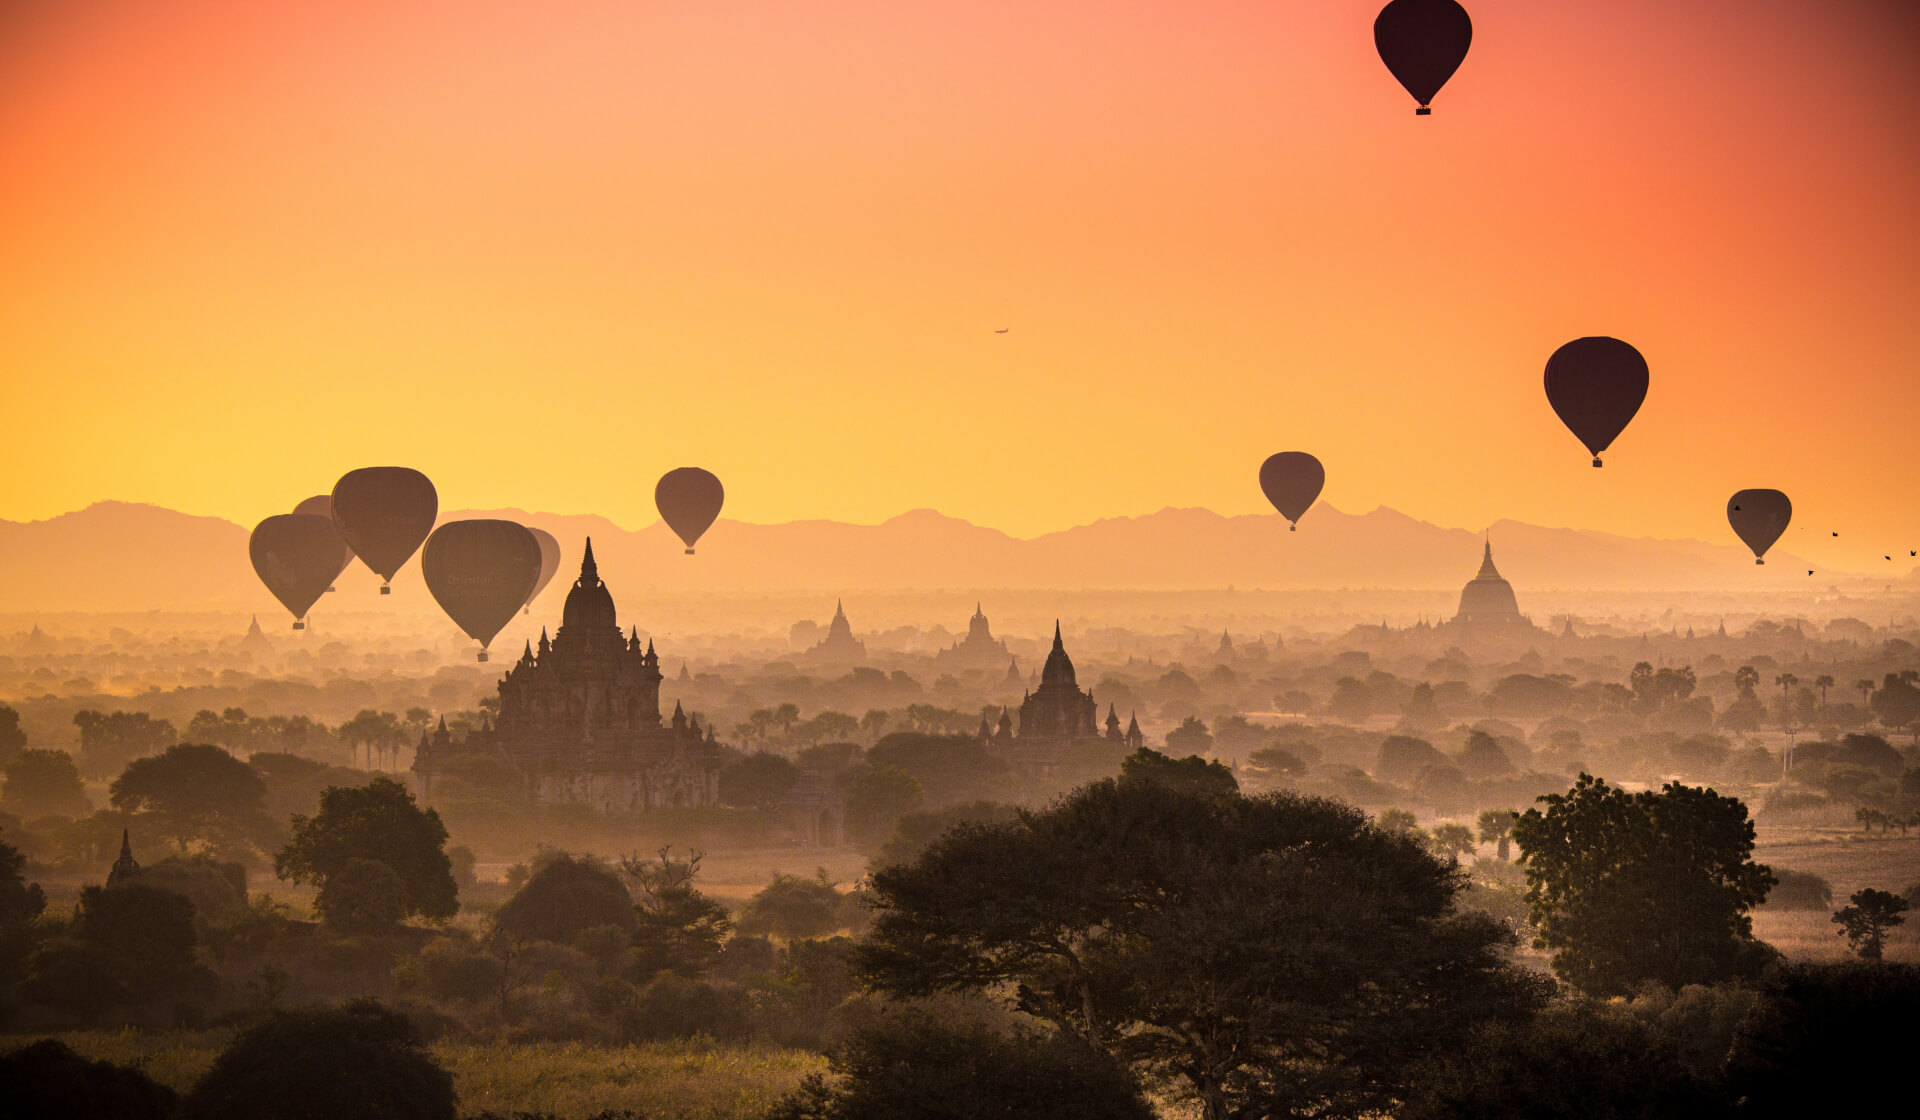 Sunrise over Bagan, Myanmar with thousands of temples and hot air balloons‍